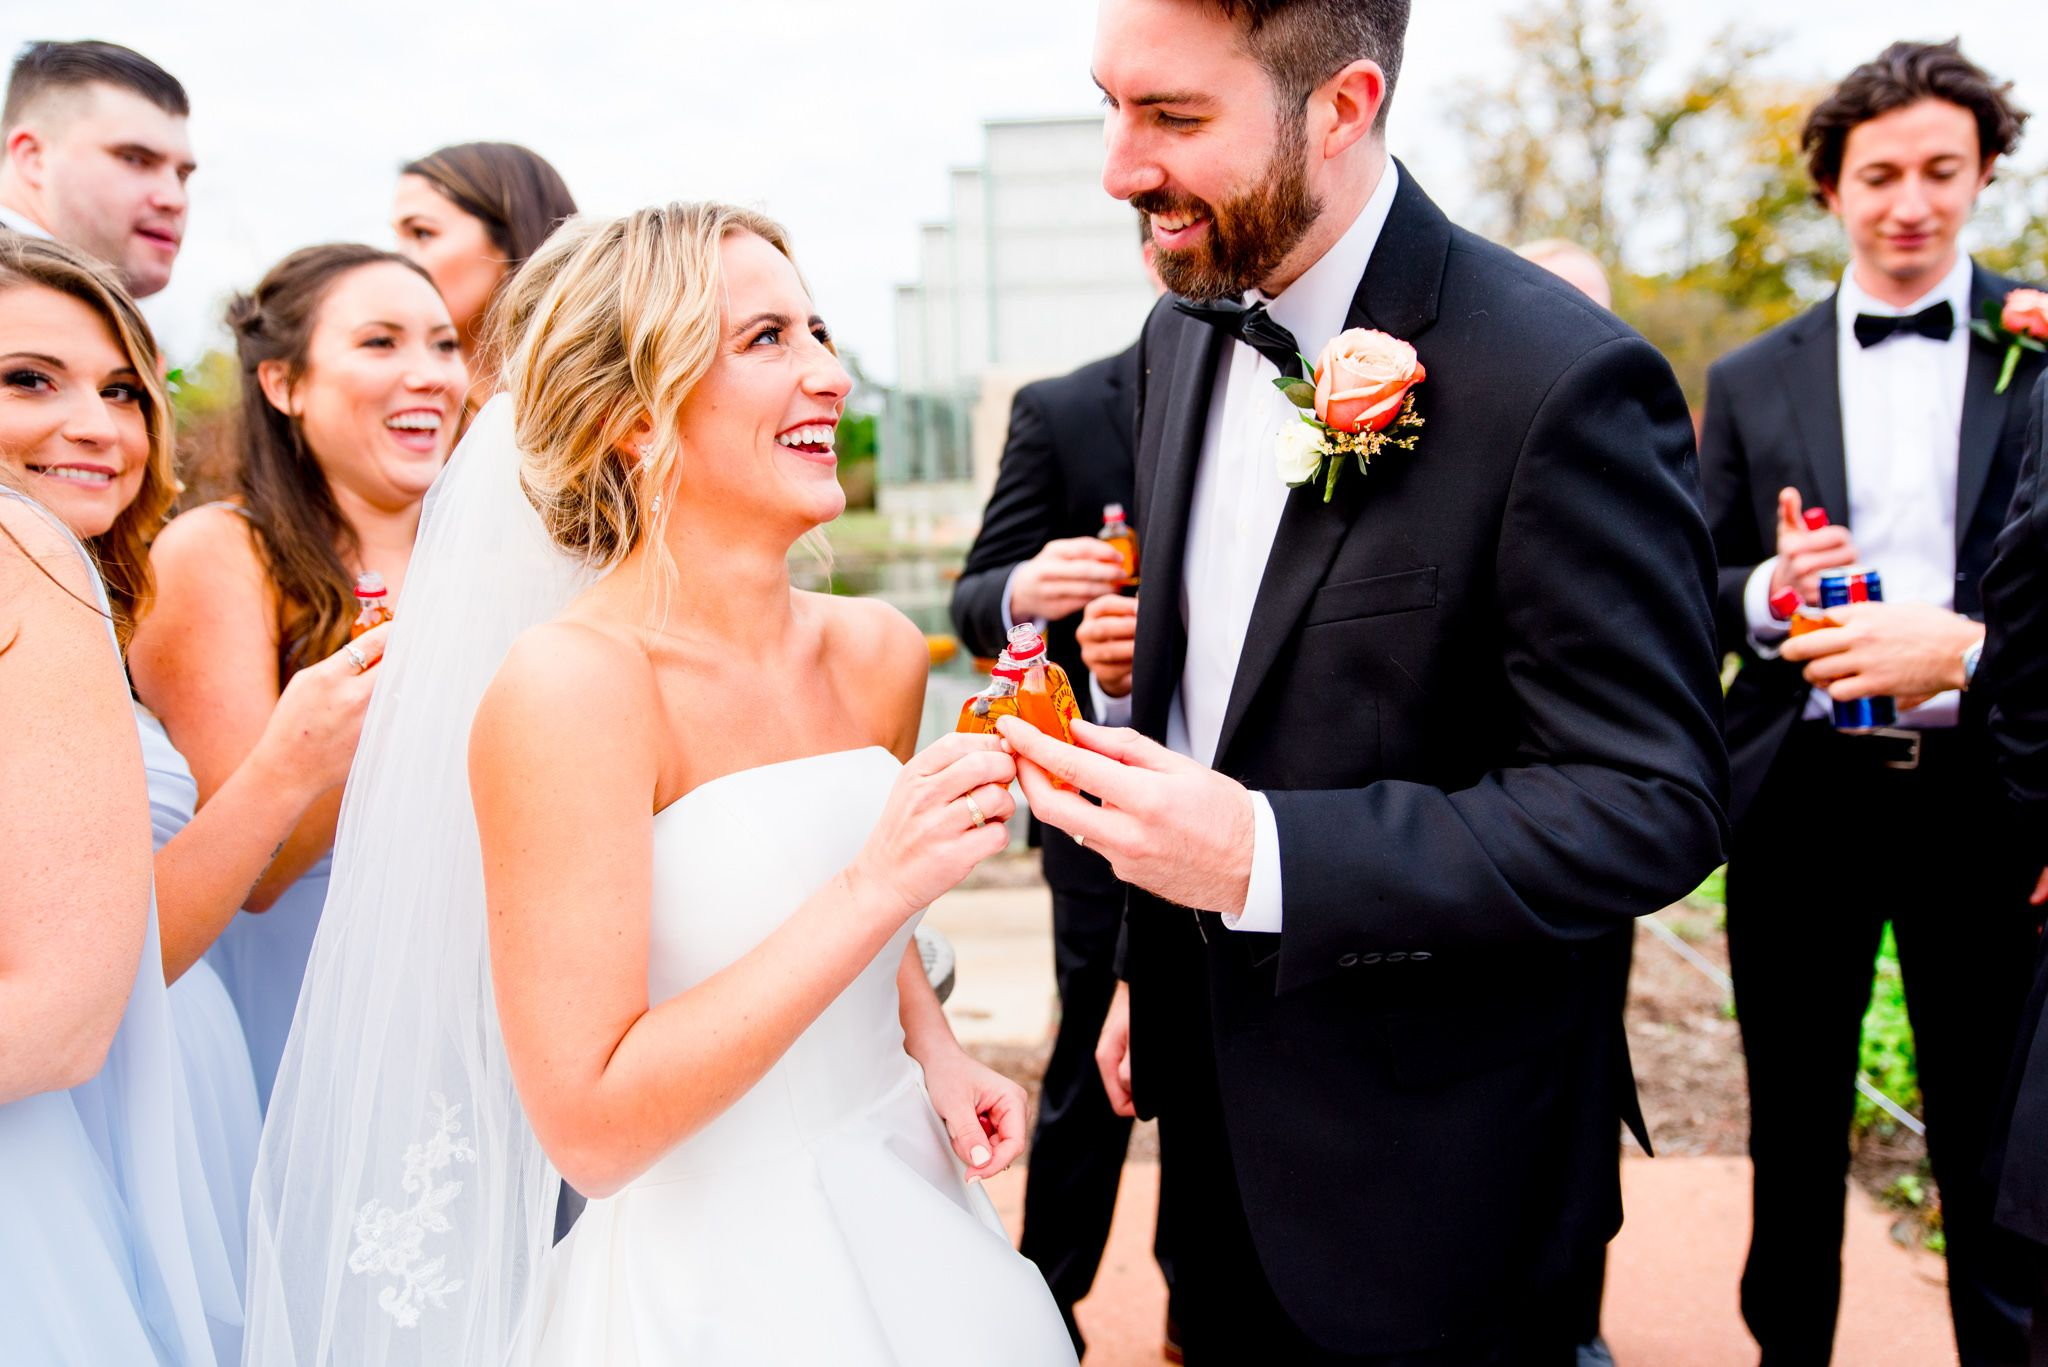 bride and groom smiling at each other, clinking mini fireball bottles together on wedding day